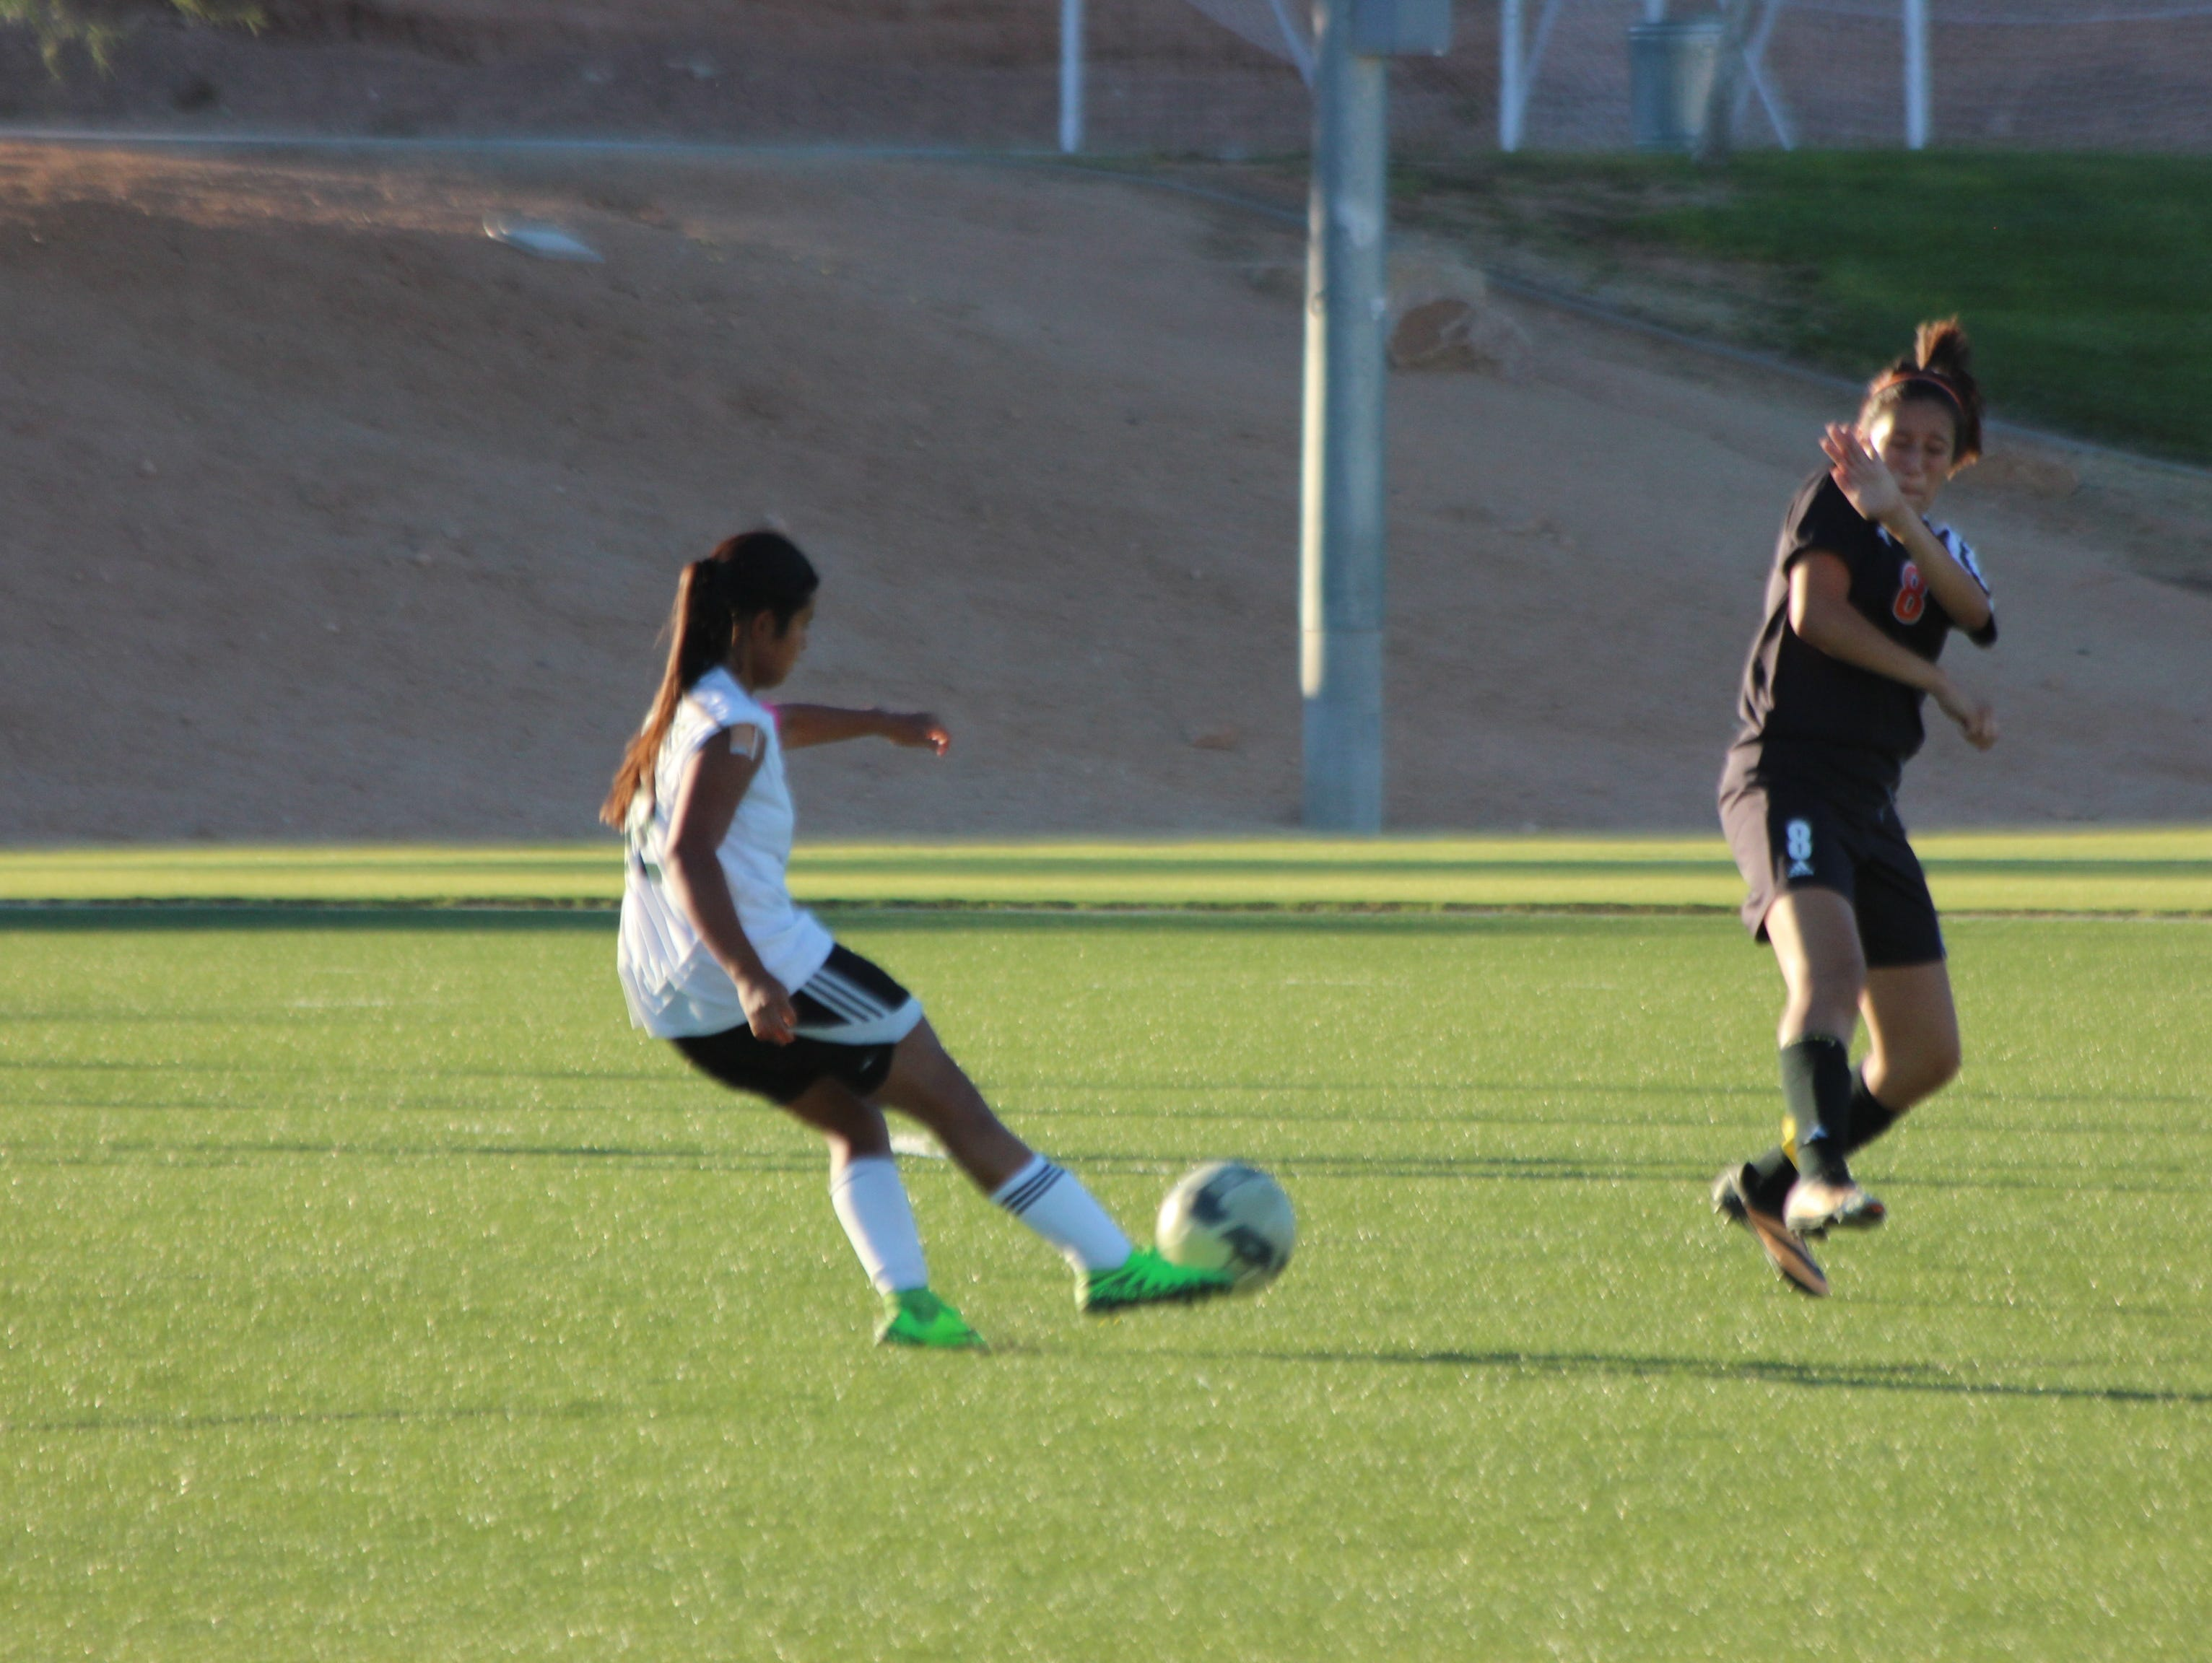 Senior Marlene Quirarte launches a kick during Friday's game against Chaparral.